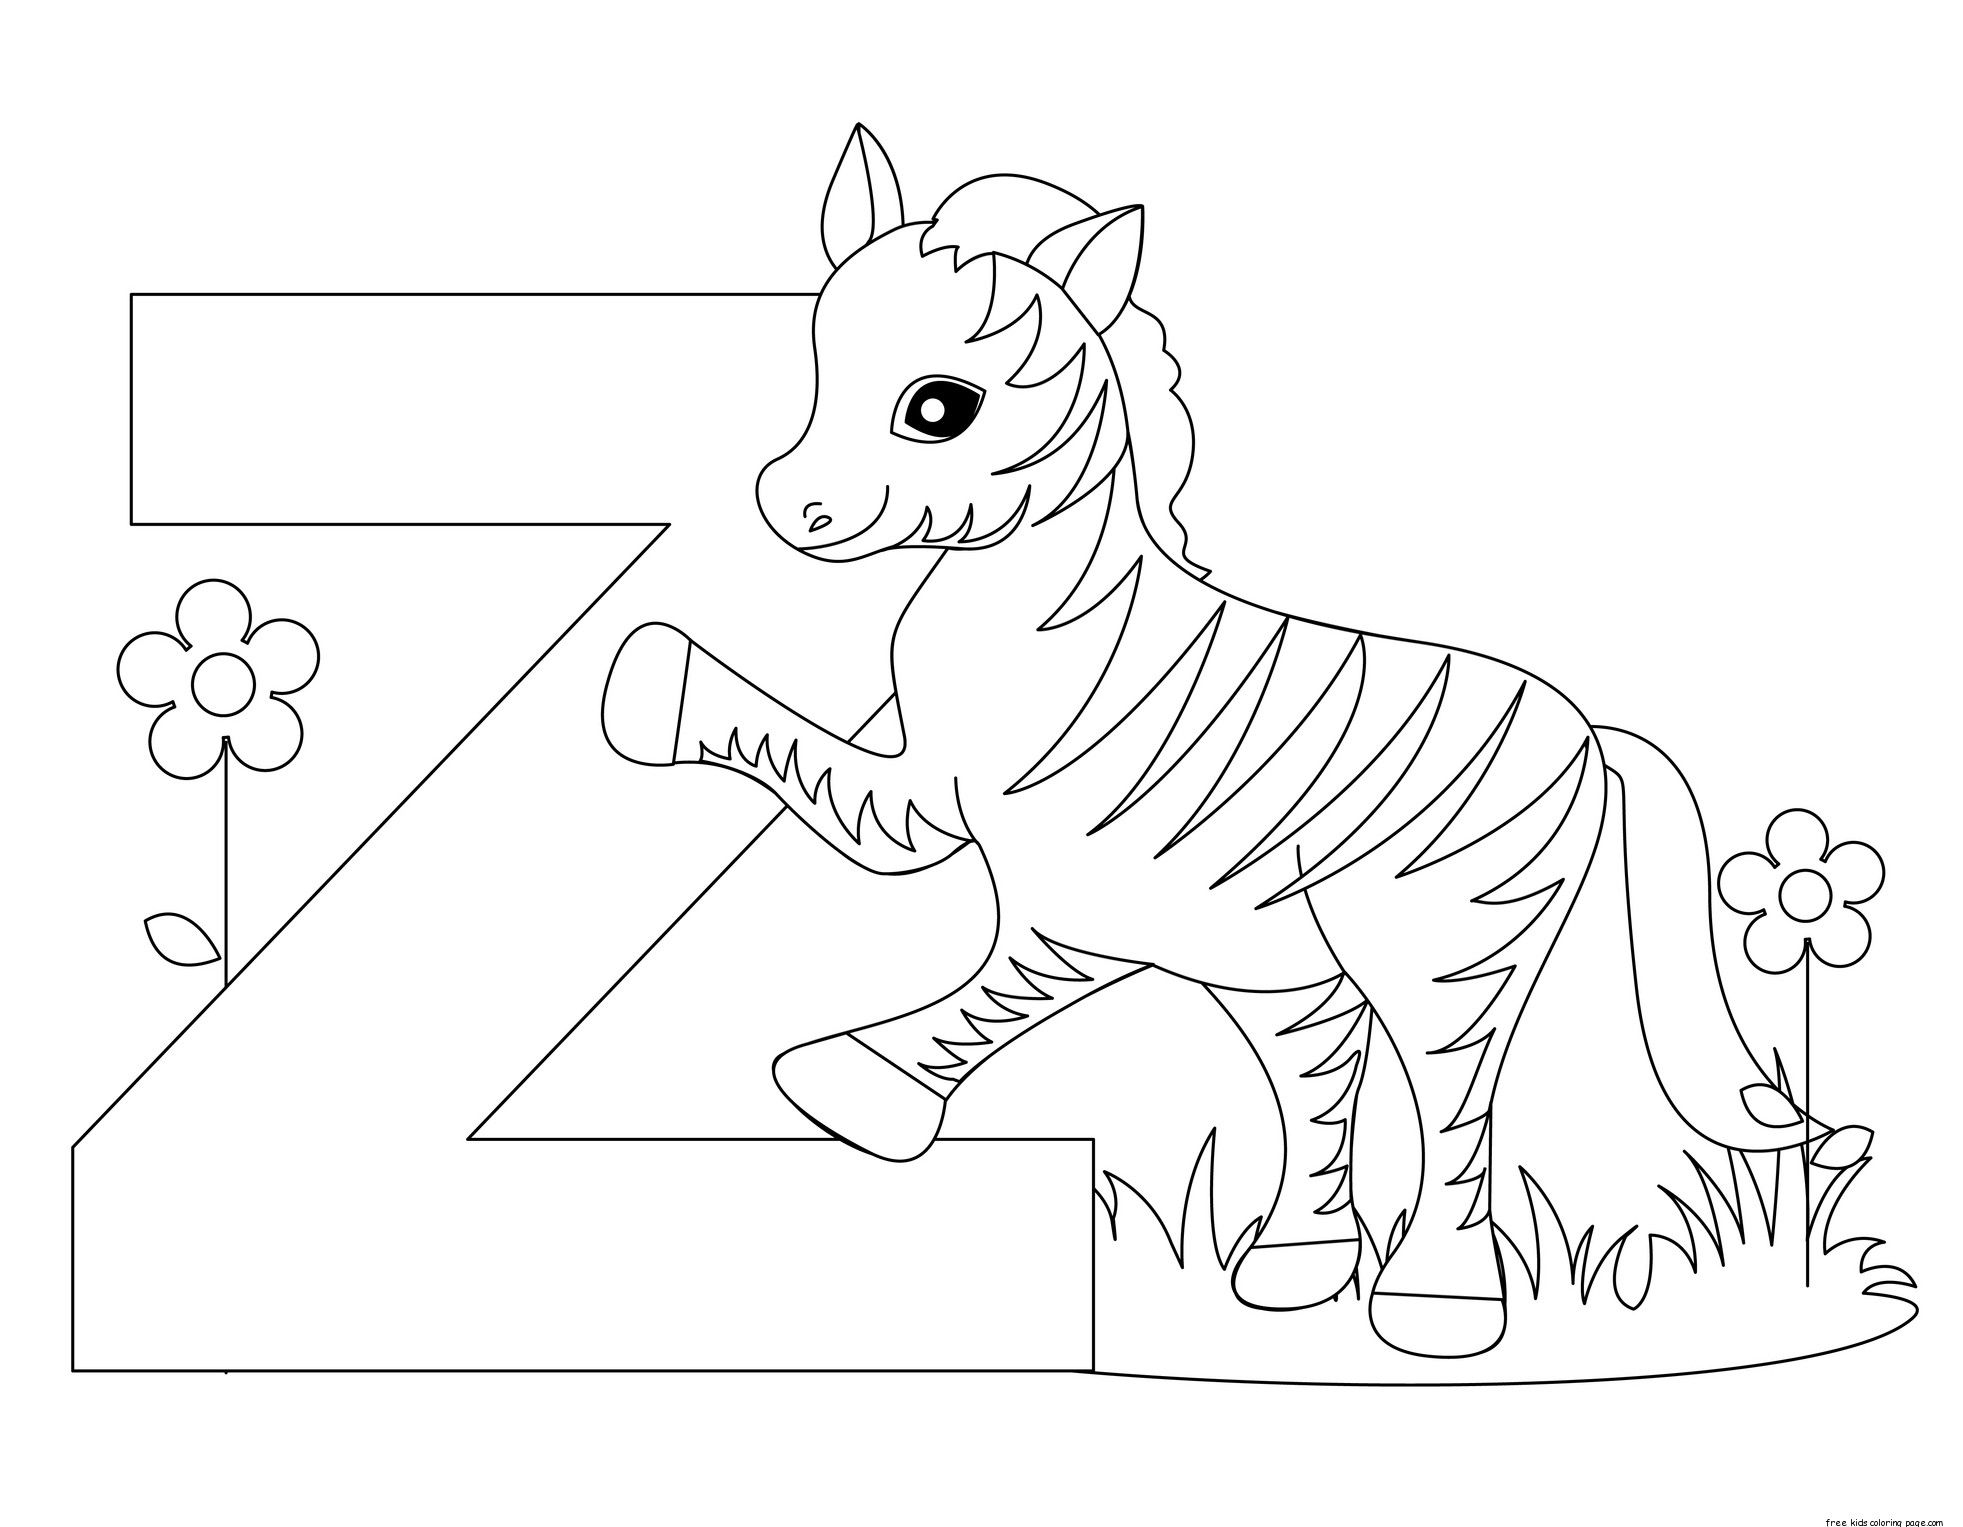 preschool animal worksheets Google Search Zoo Animals